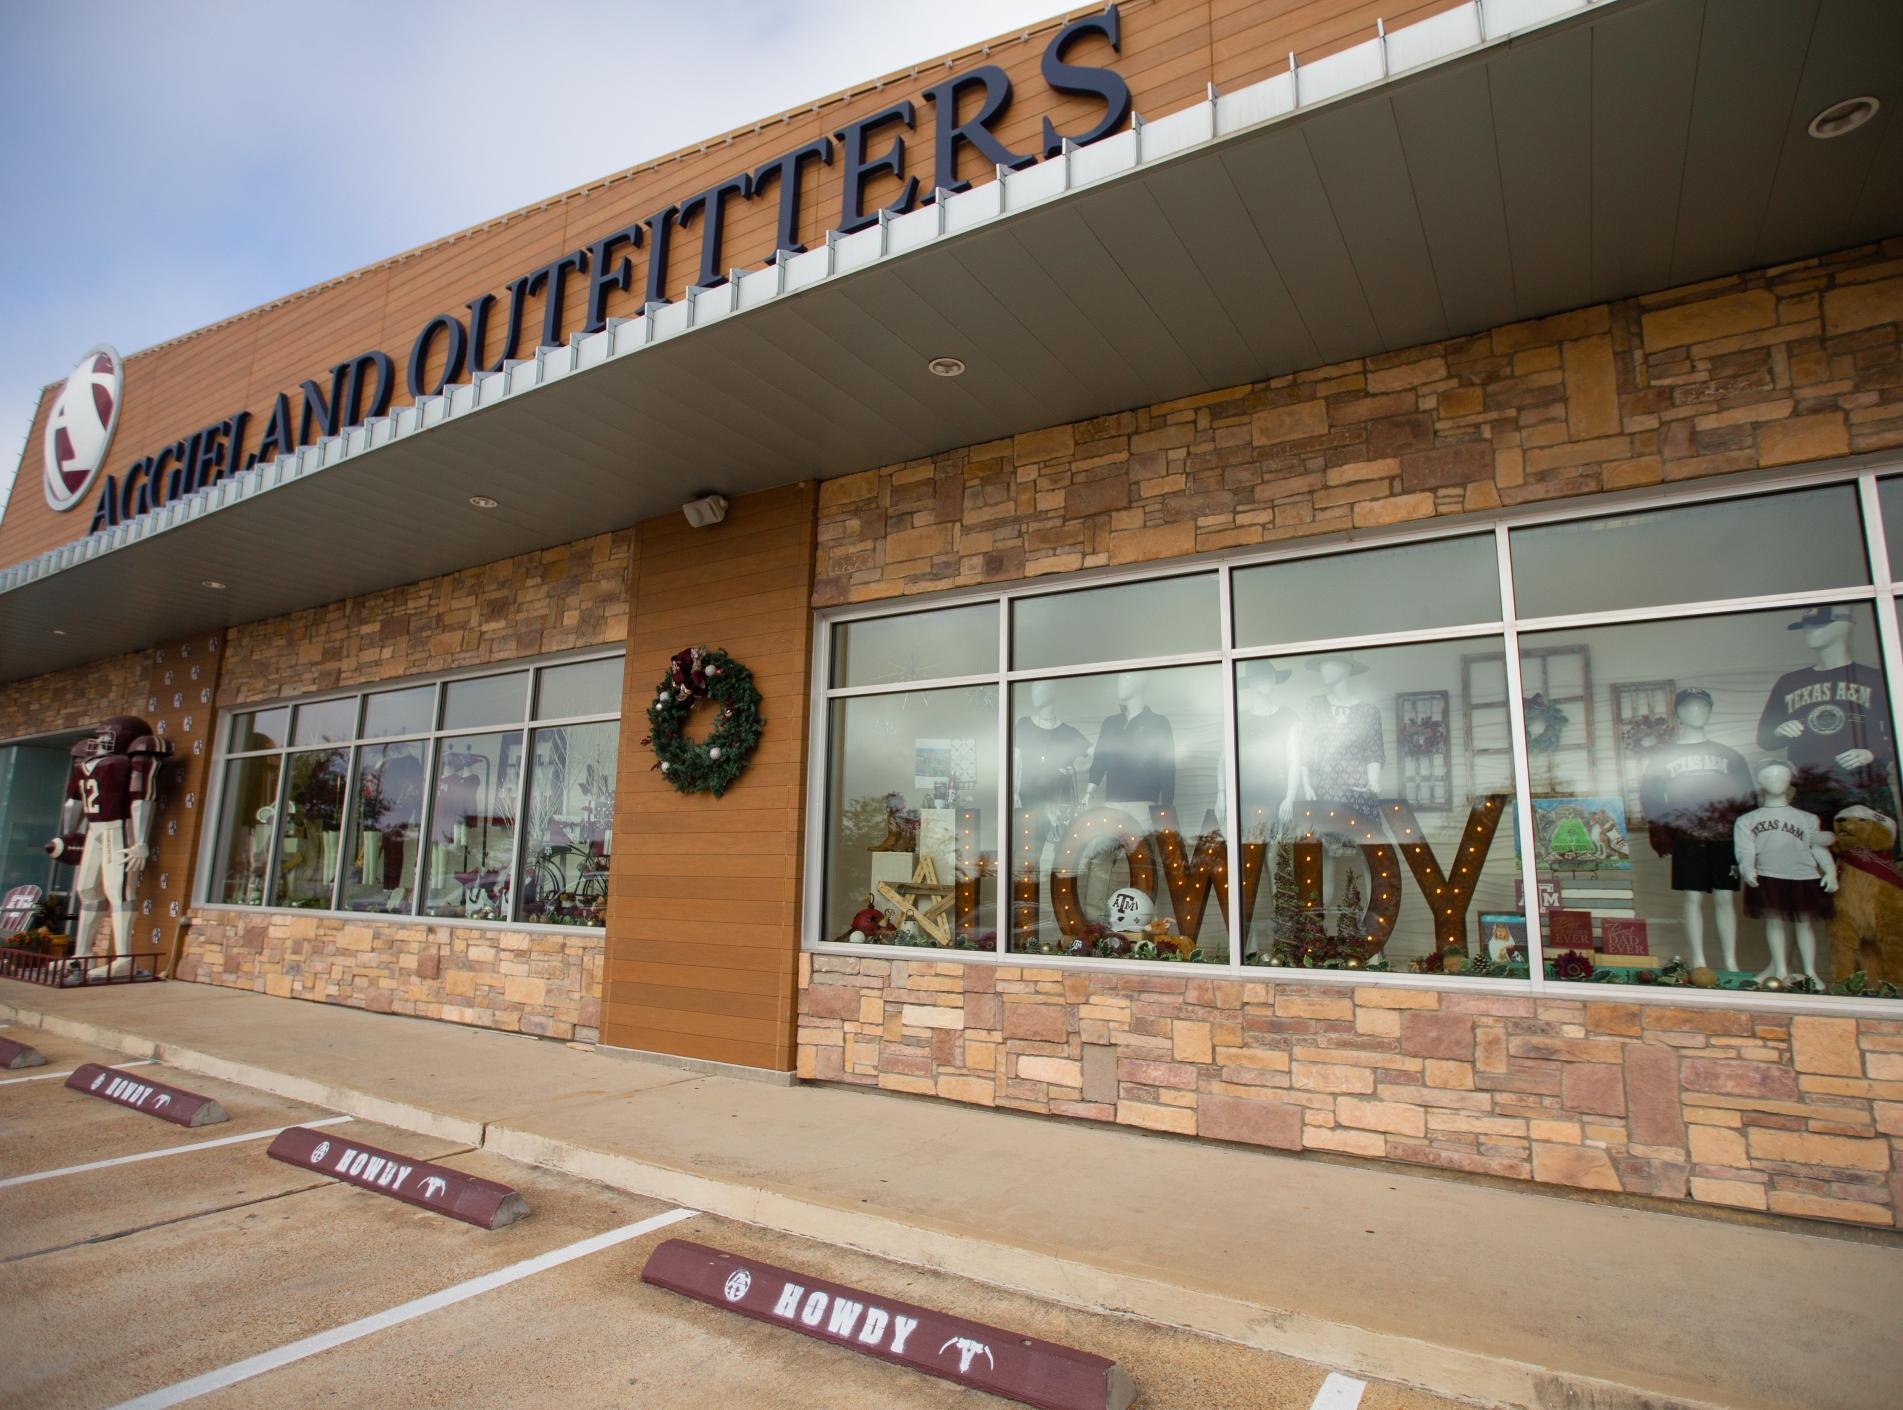 Aggieland Outfitters